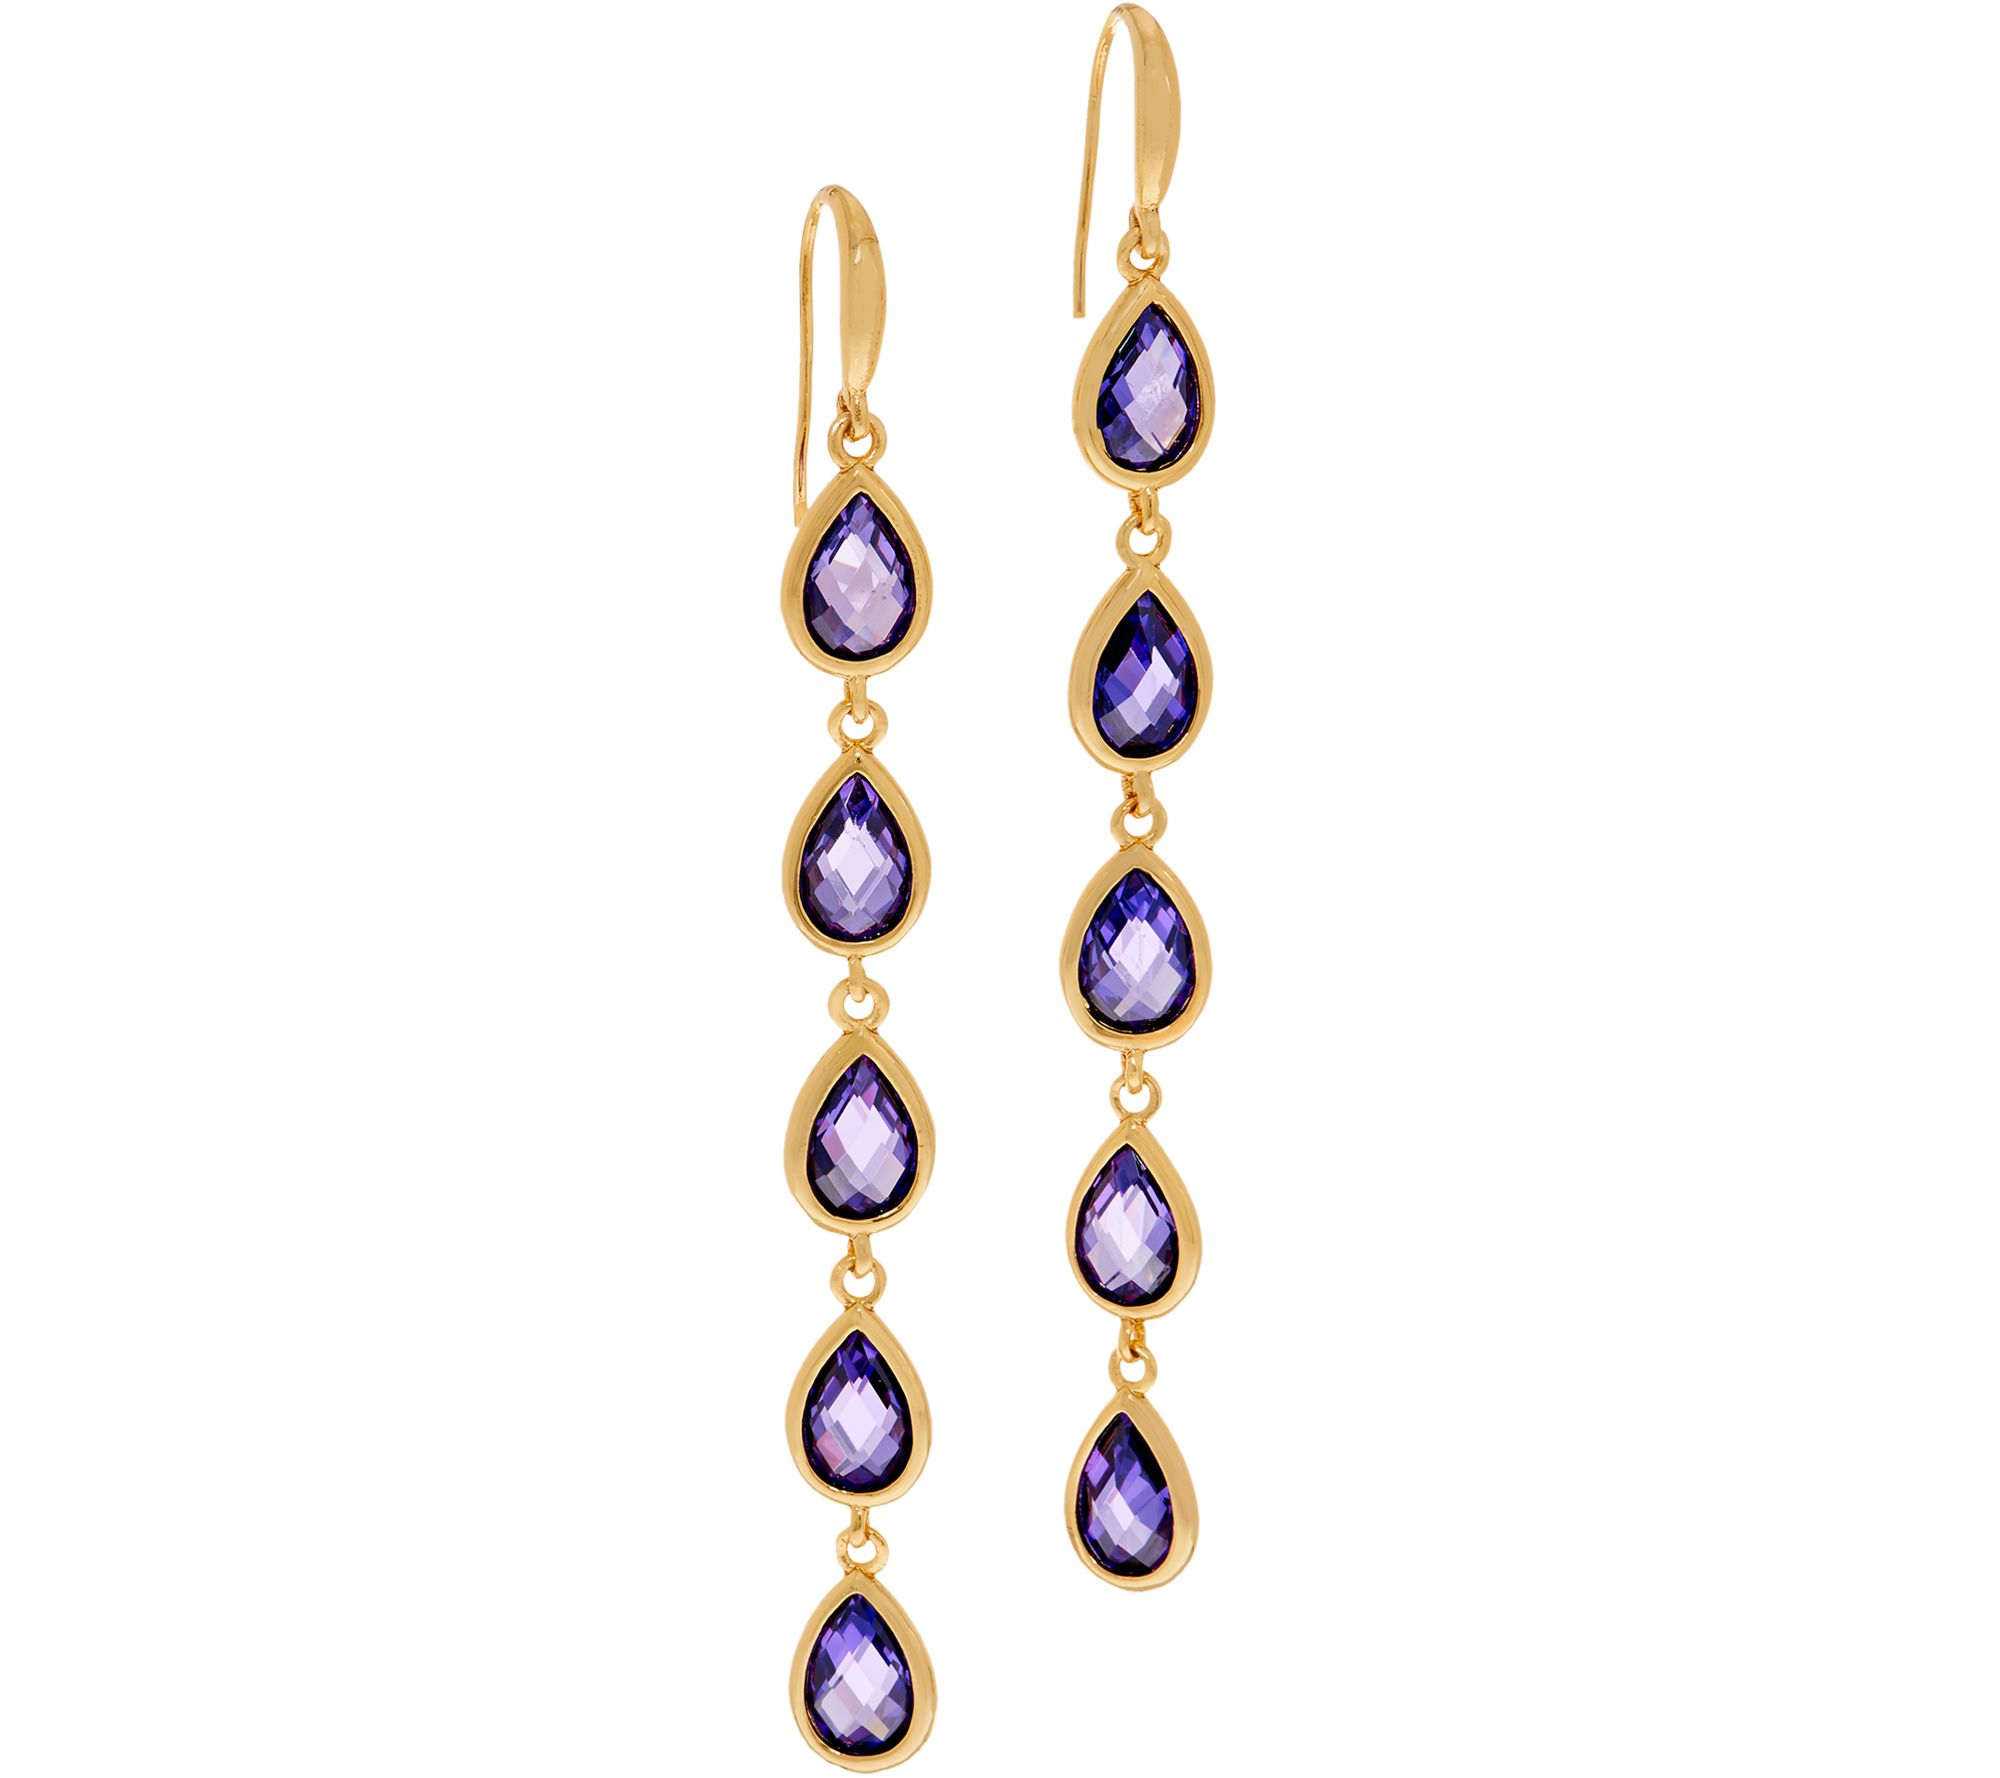 jewelry pearl and earrings ear rings products teardrop designer leather demure